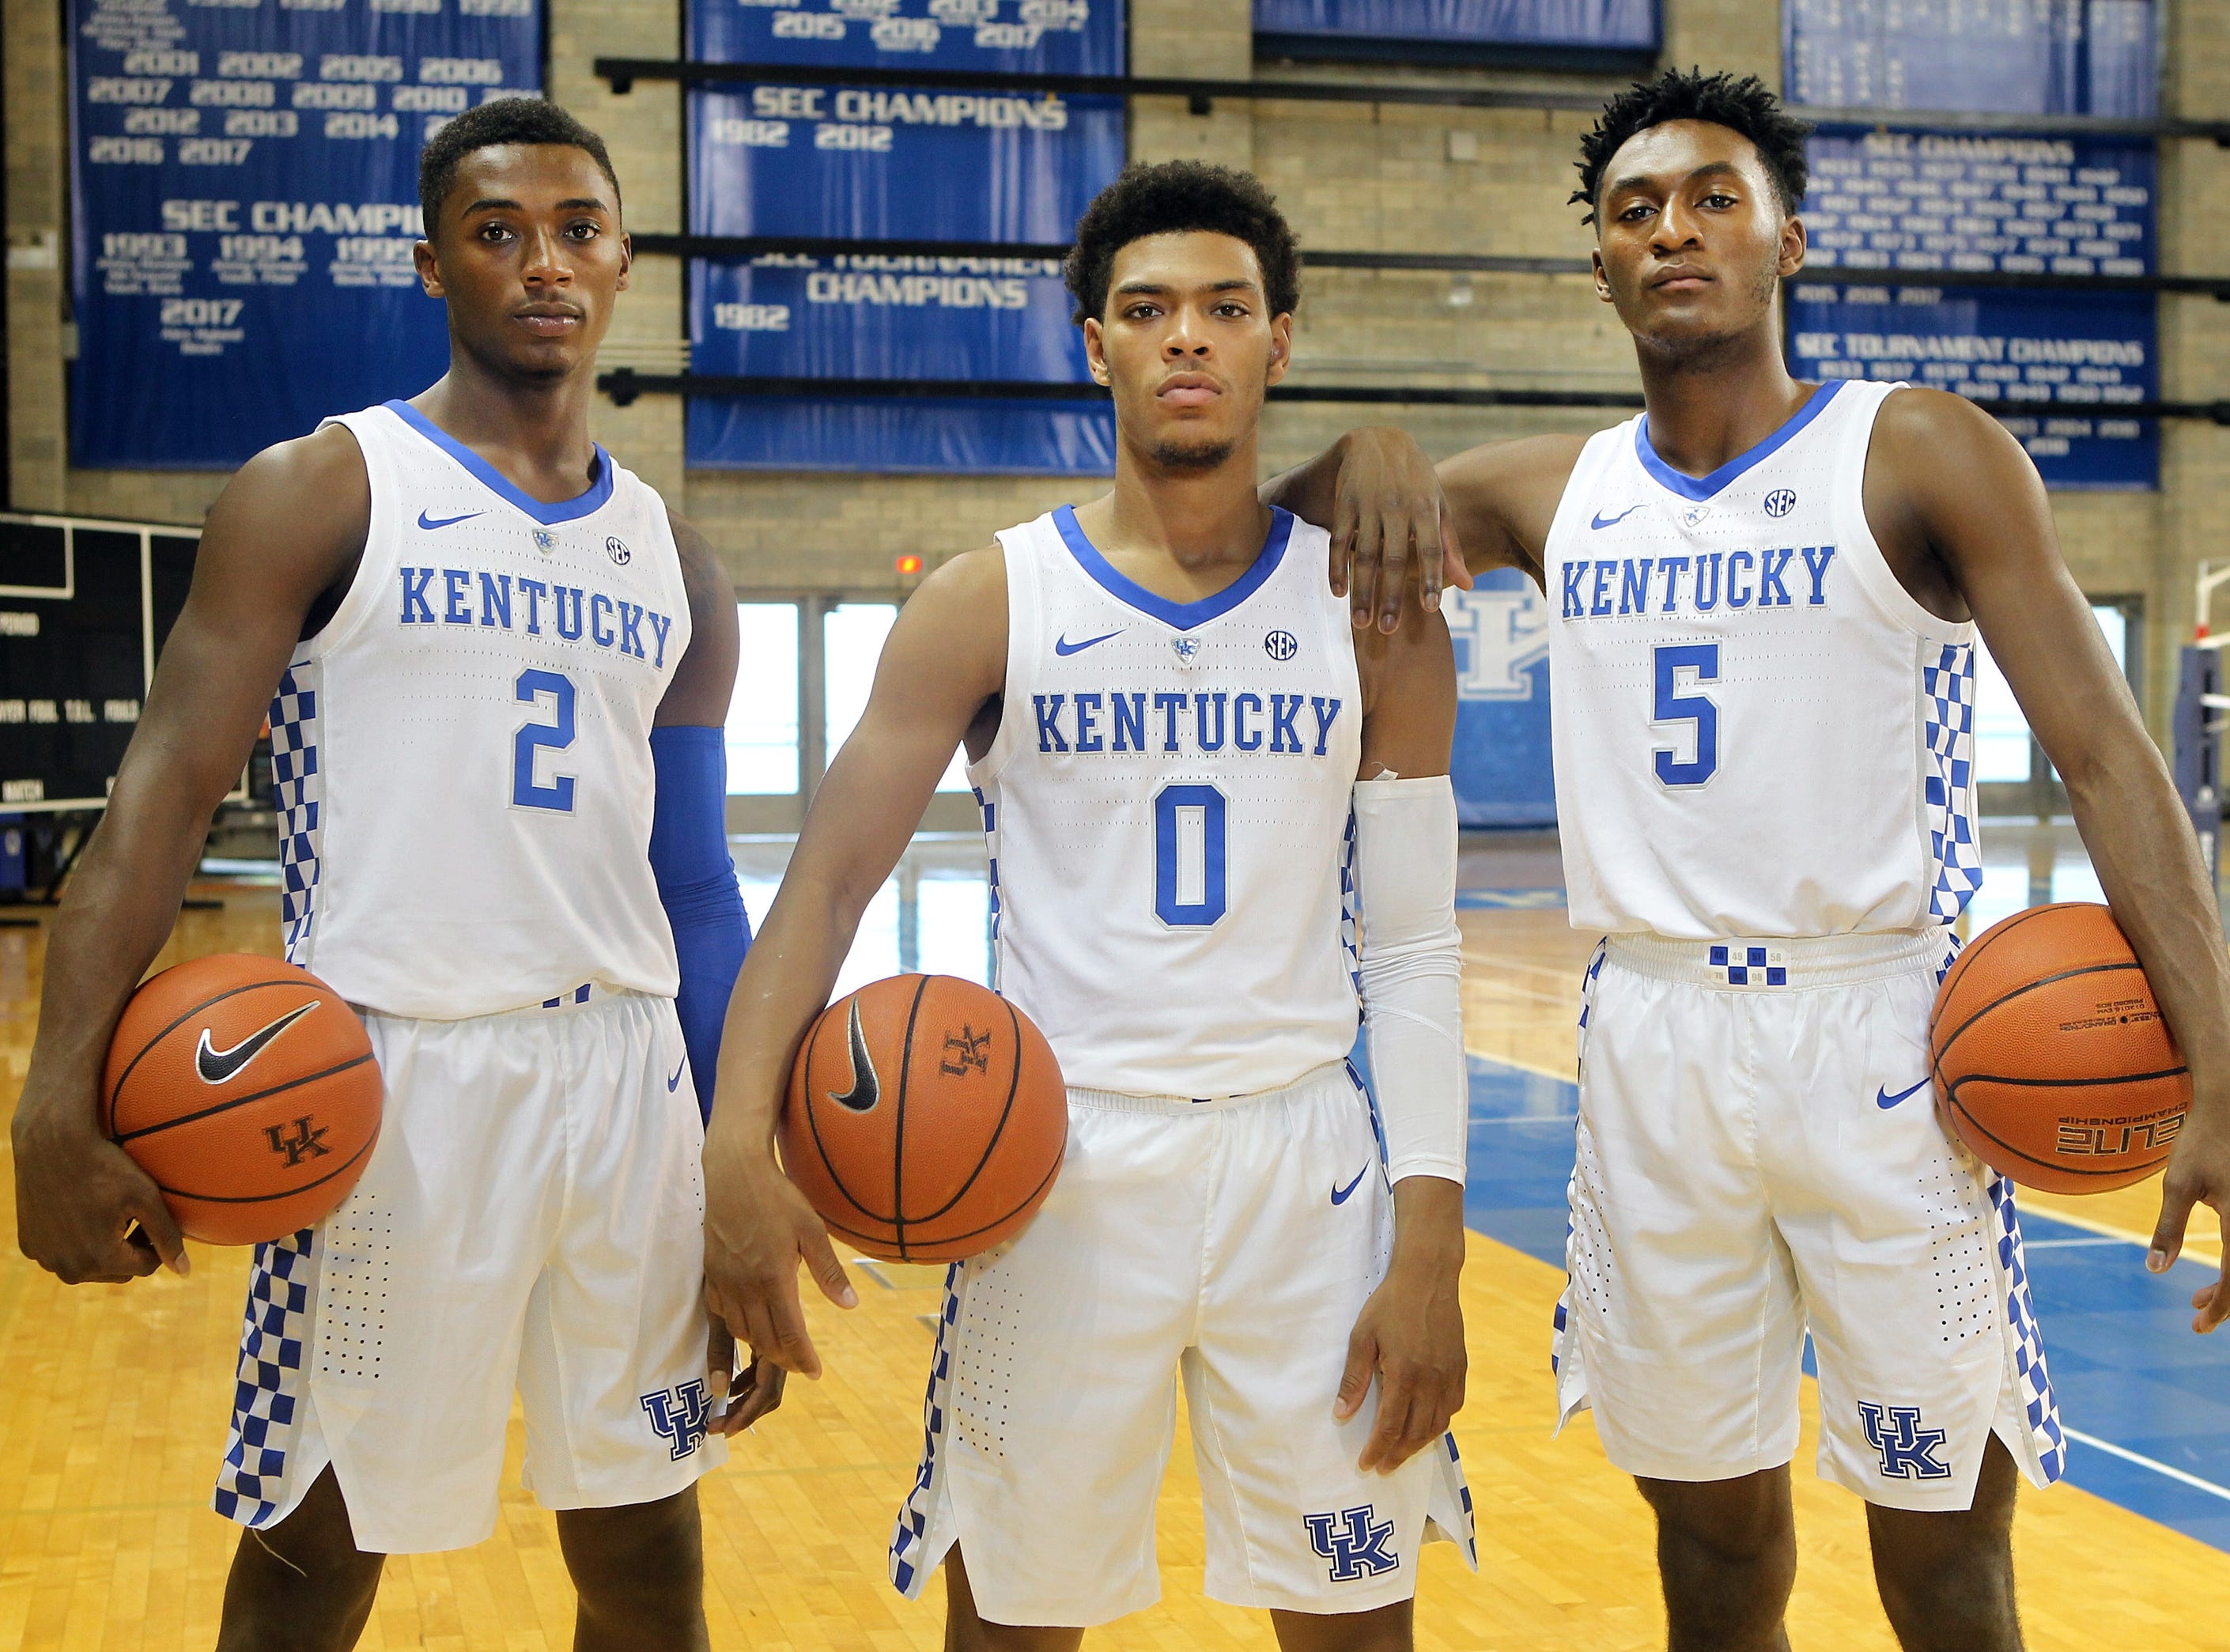 Kentucky point guards Ashton Hagans (2), Quade Green (0) and Immanuel Quickley (5) pose during the teams picture day in Memorial Coliseum on campus. Sep. 20, 2018